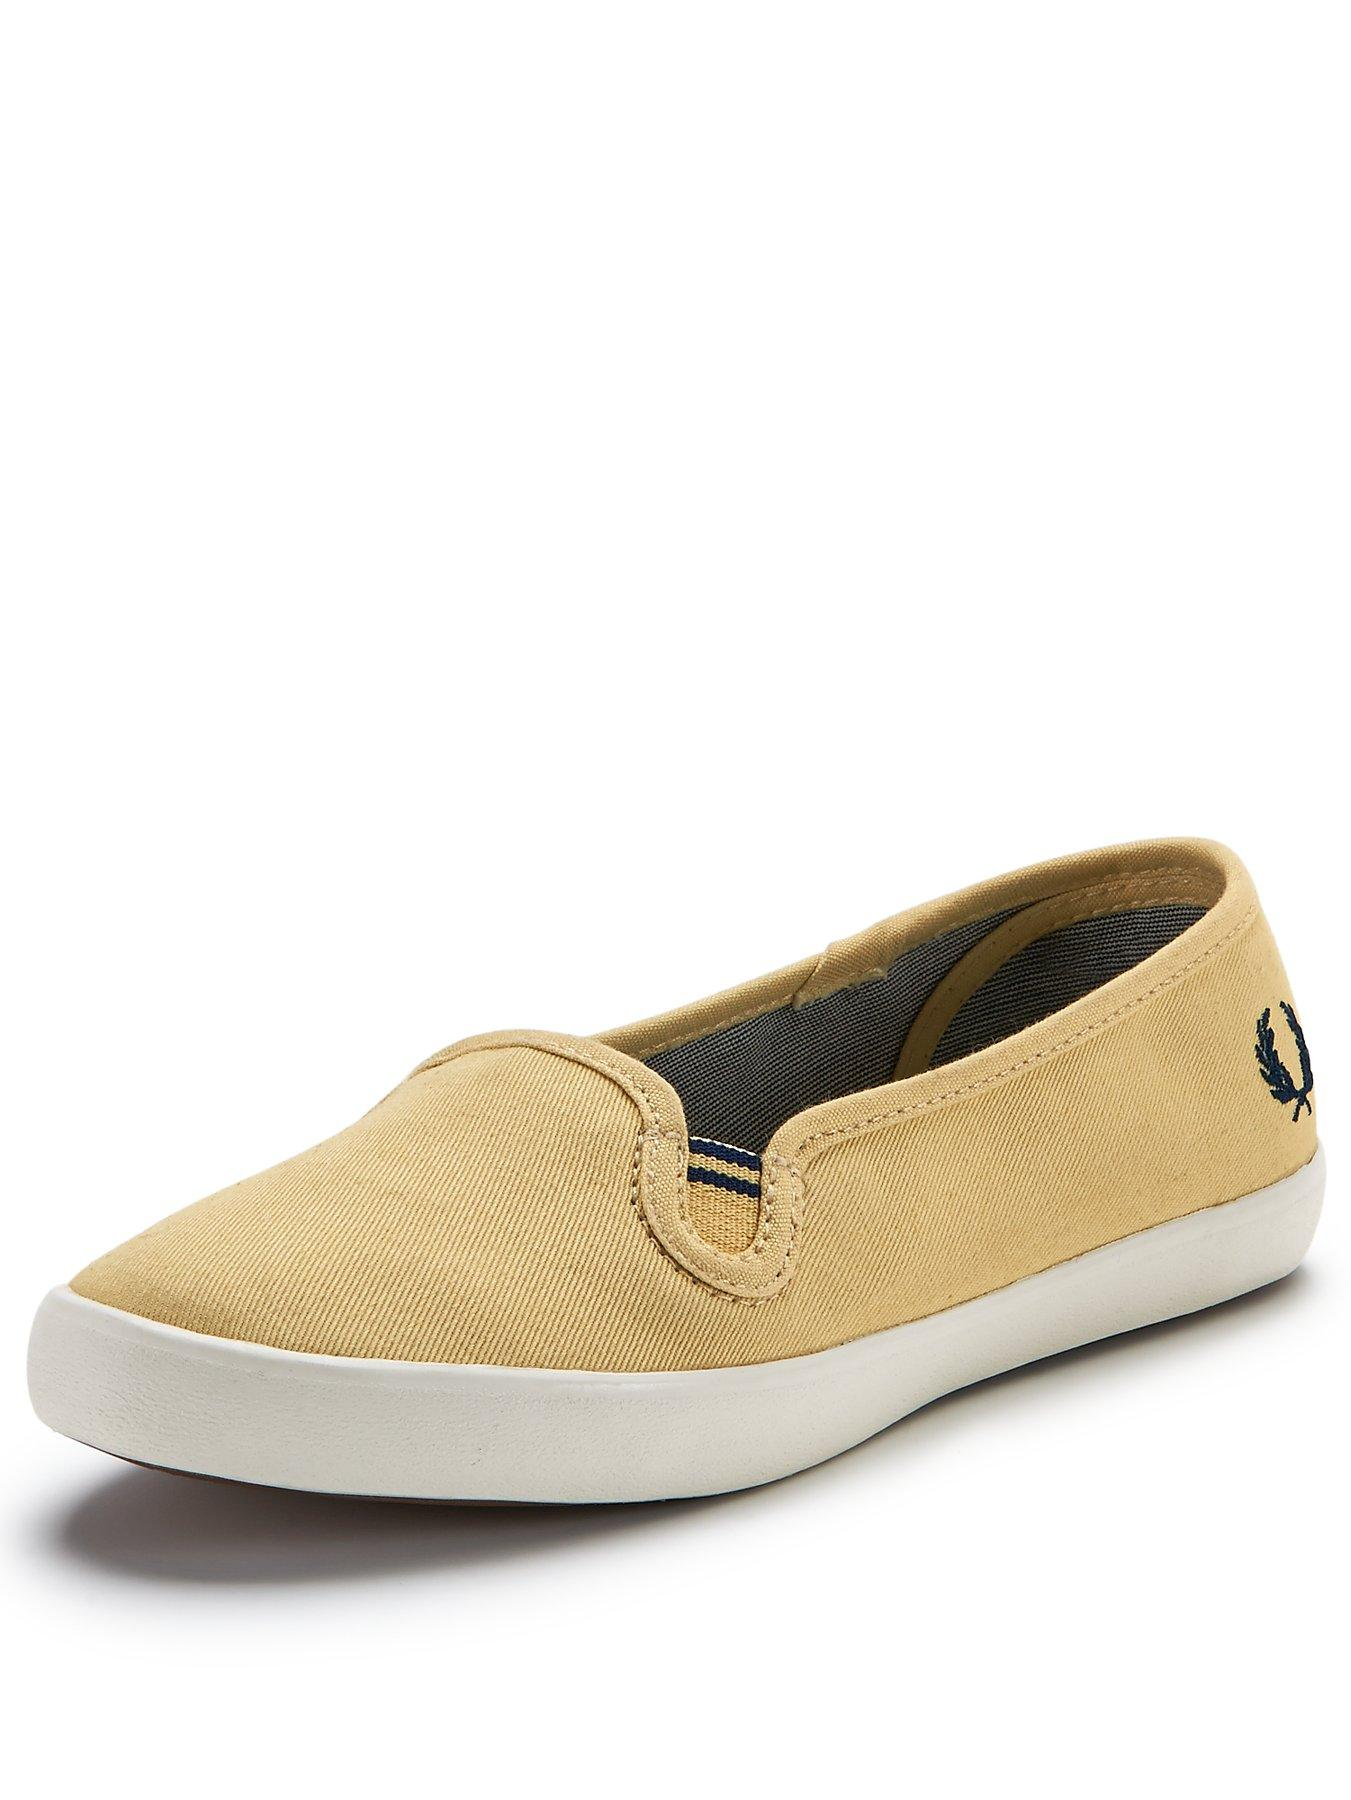 Fred Perry Bell Slip On Espadrille